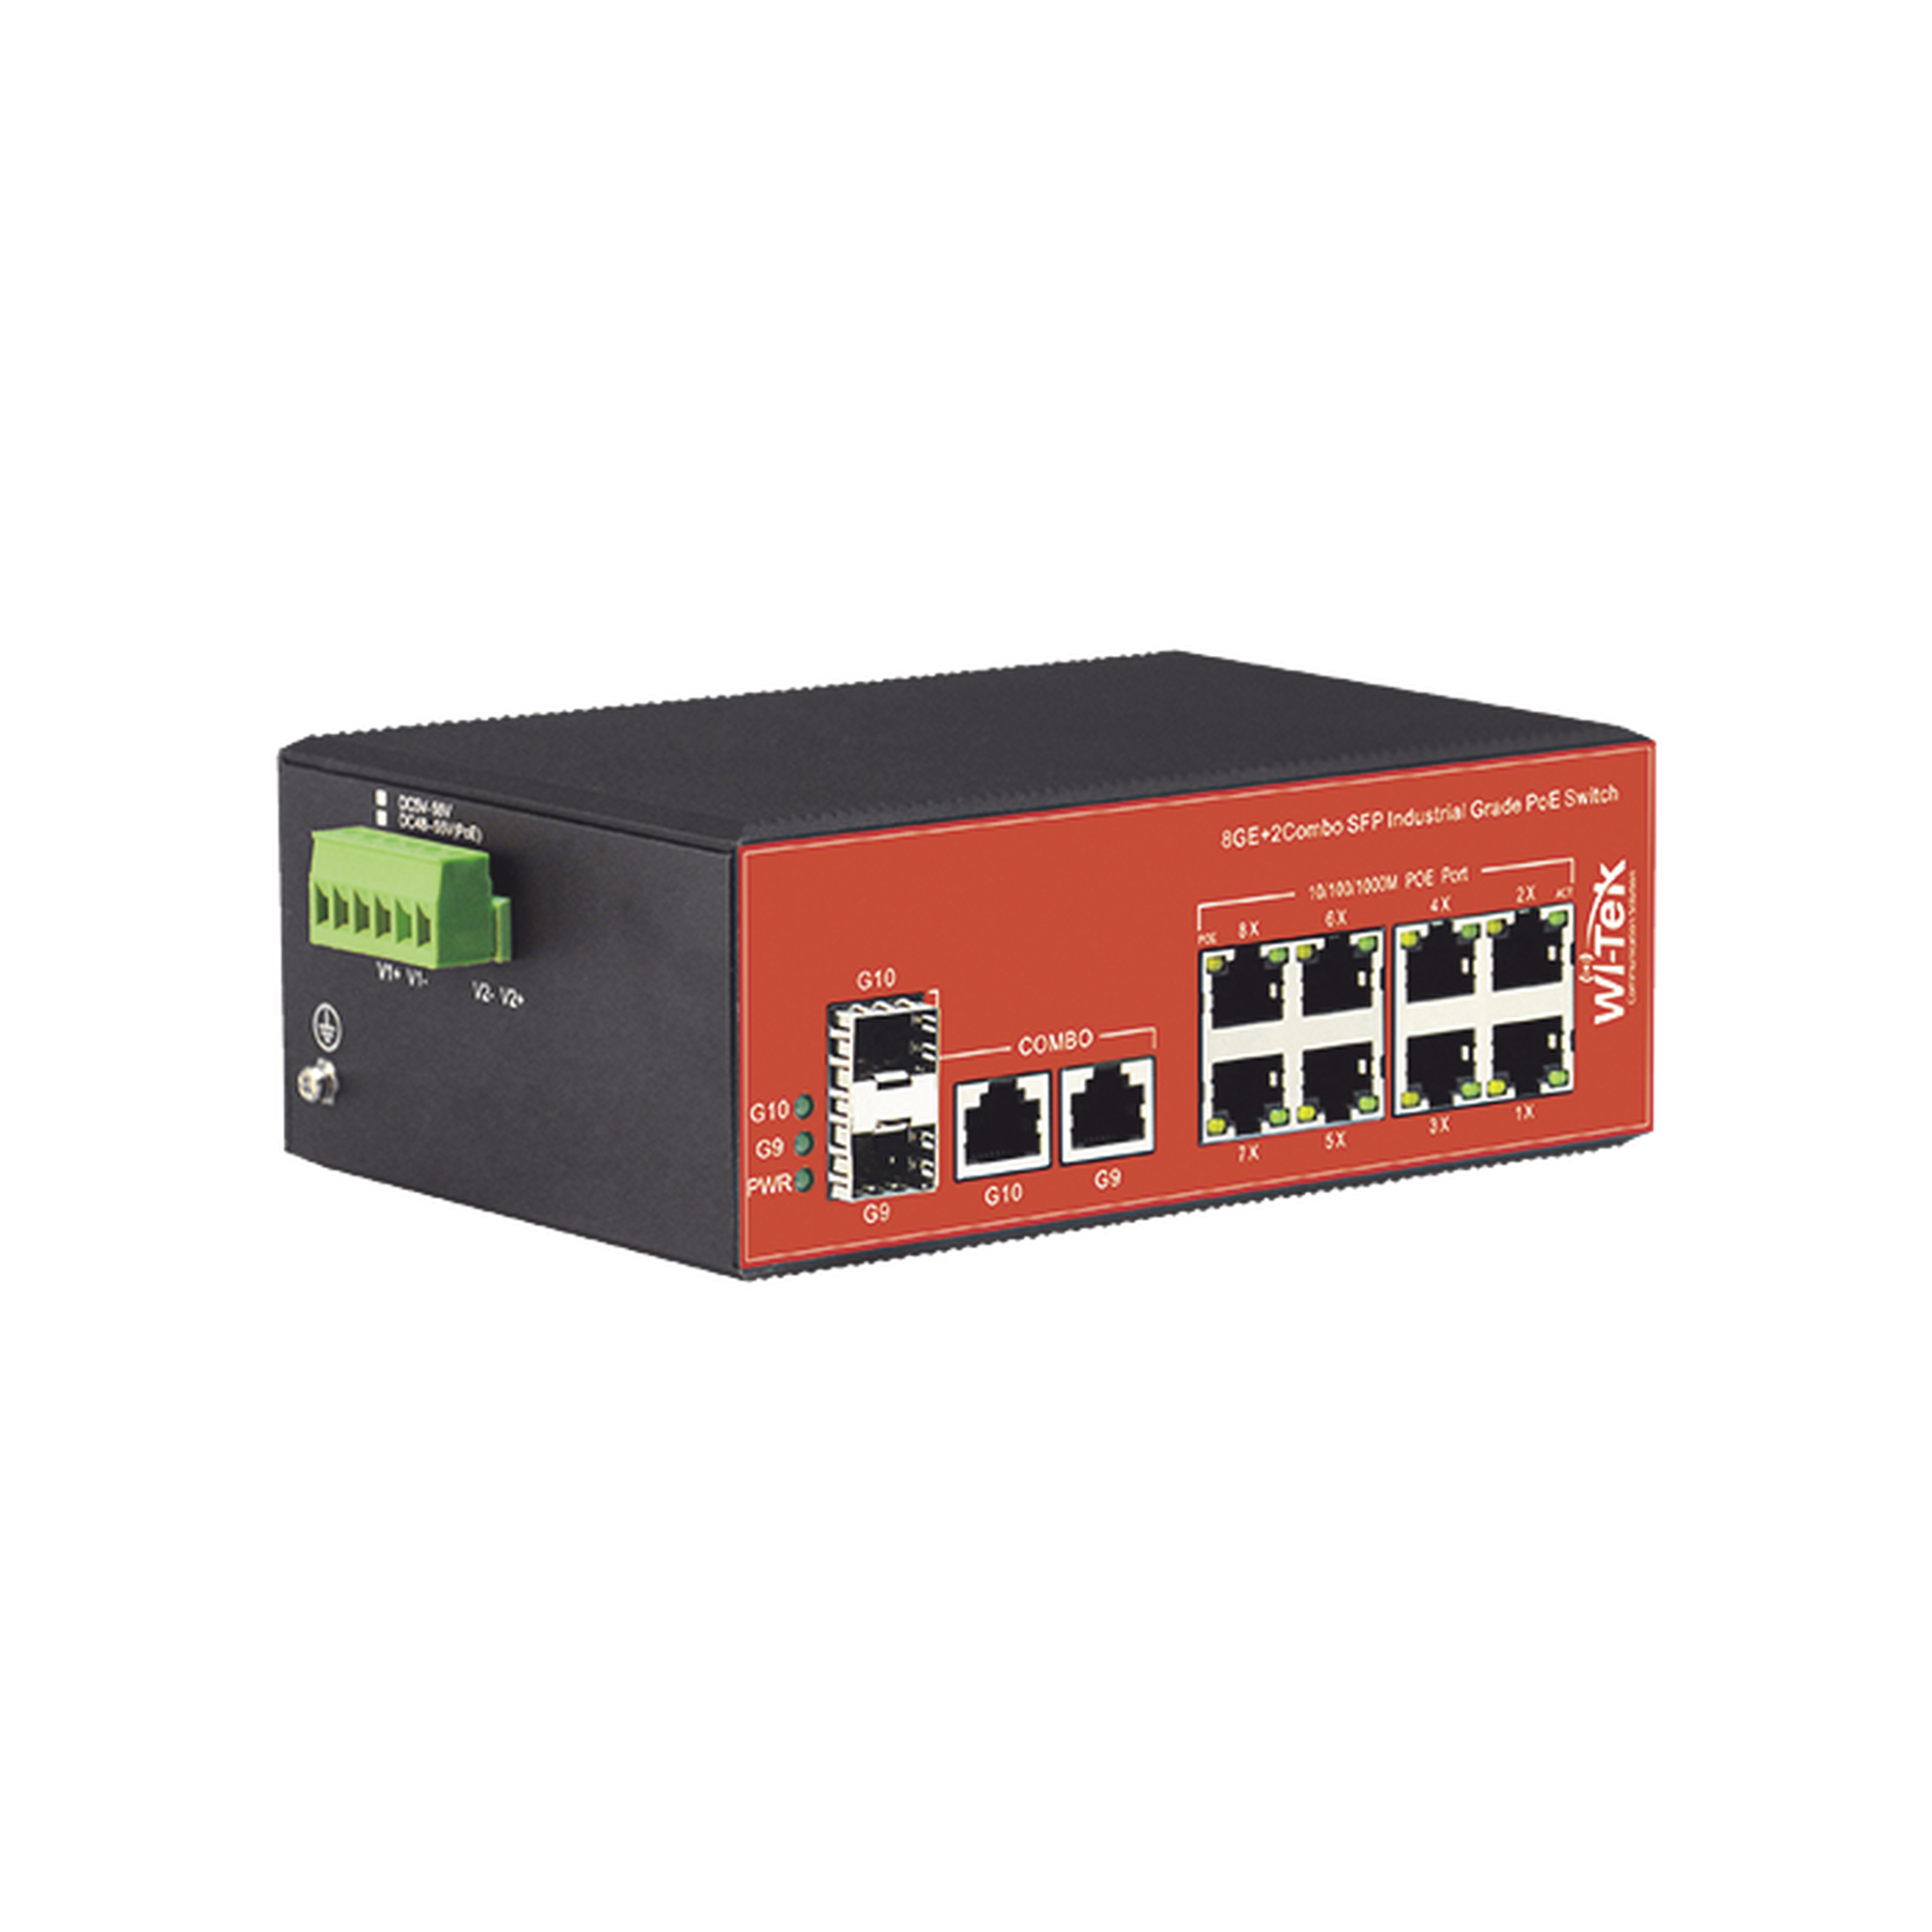 Switch Industrial PoE+ no administrable de 8 Puertos 10/100/1000Mbps + 2 SFP Combo, 150 W